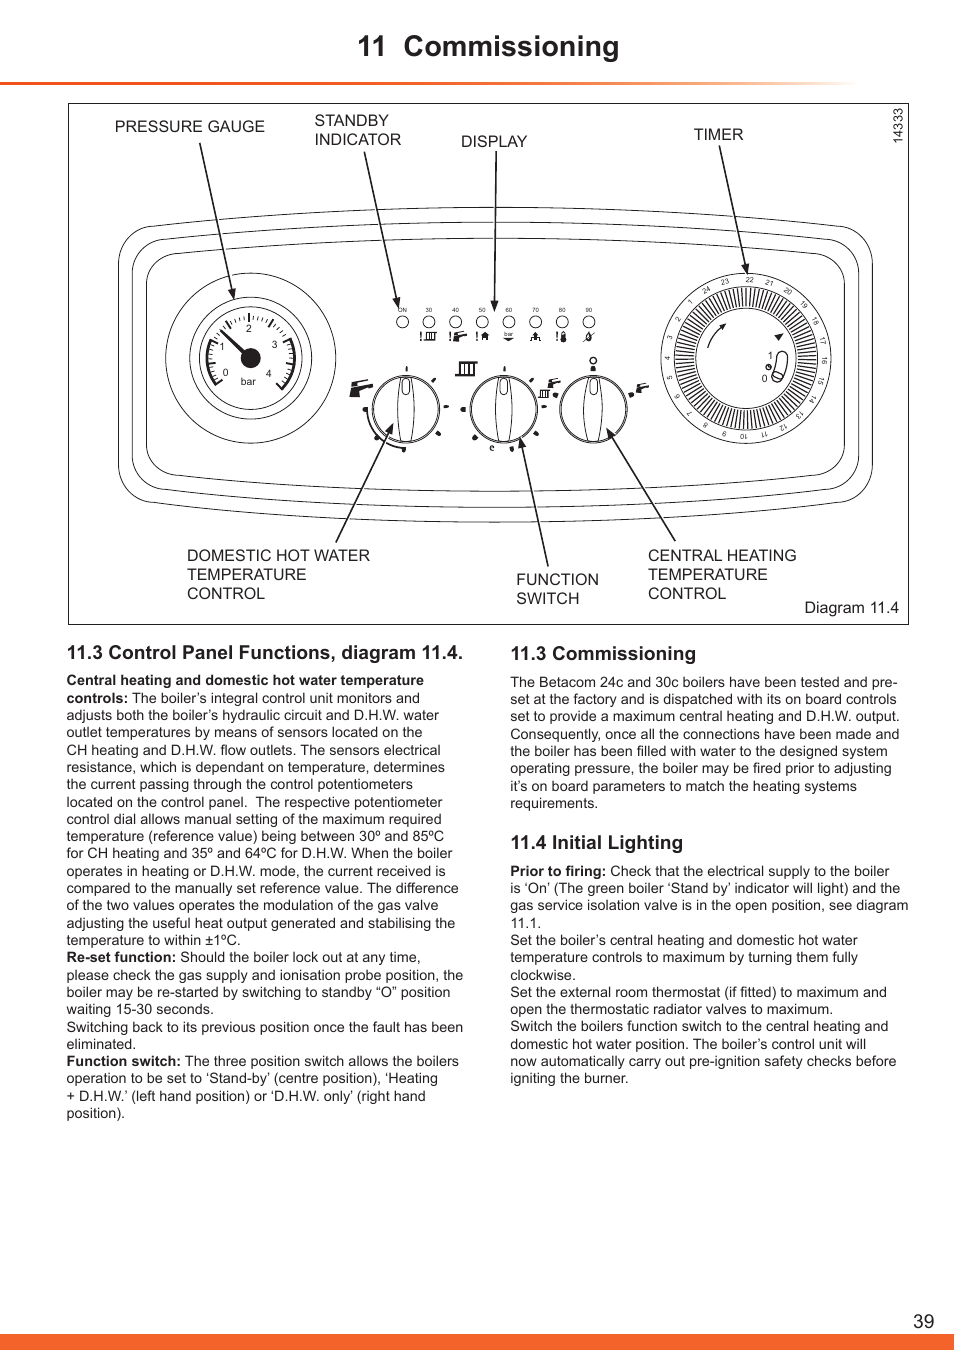 11 commissioning, 3 control panel functions, diagram 11.4, 3 ...